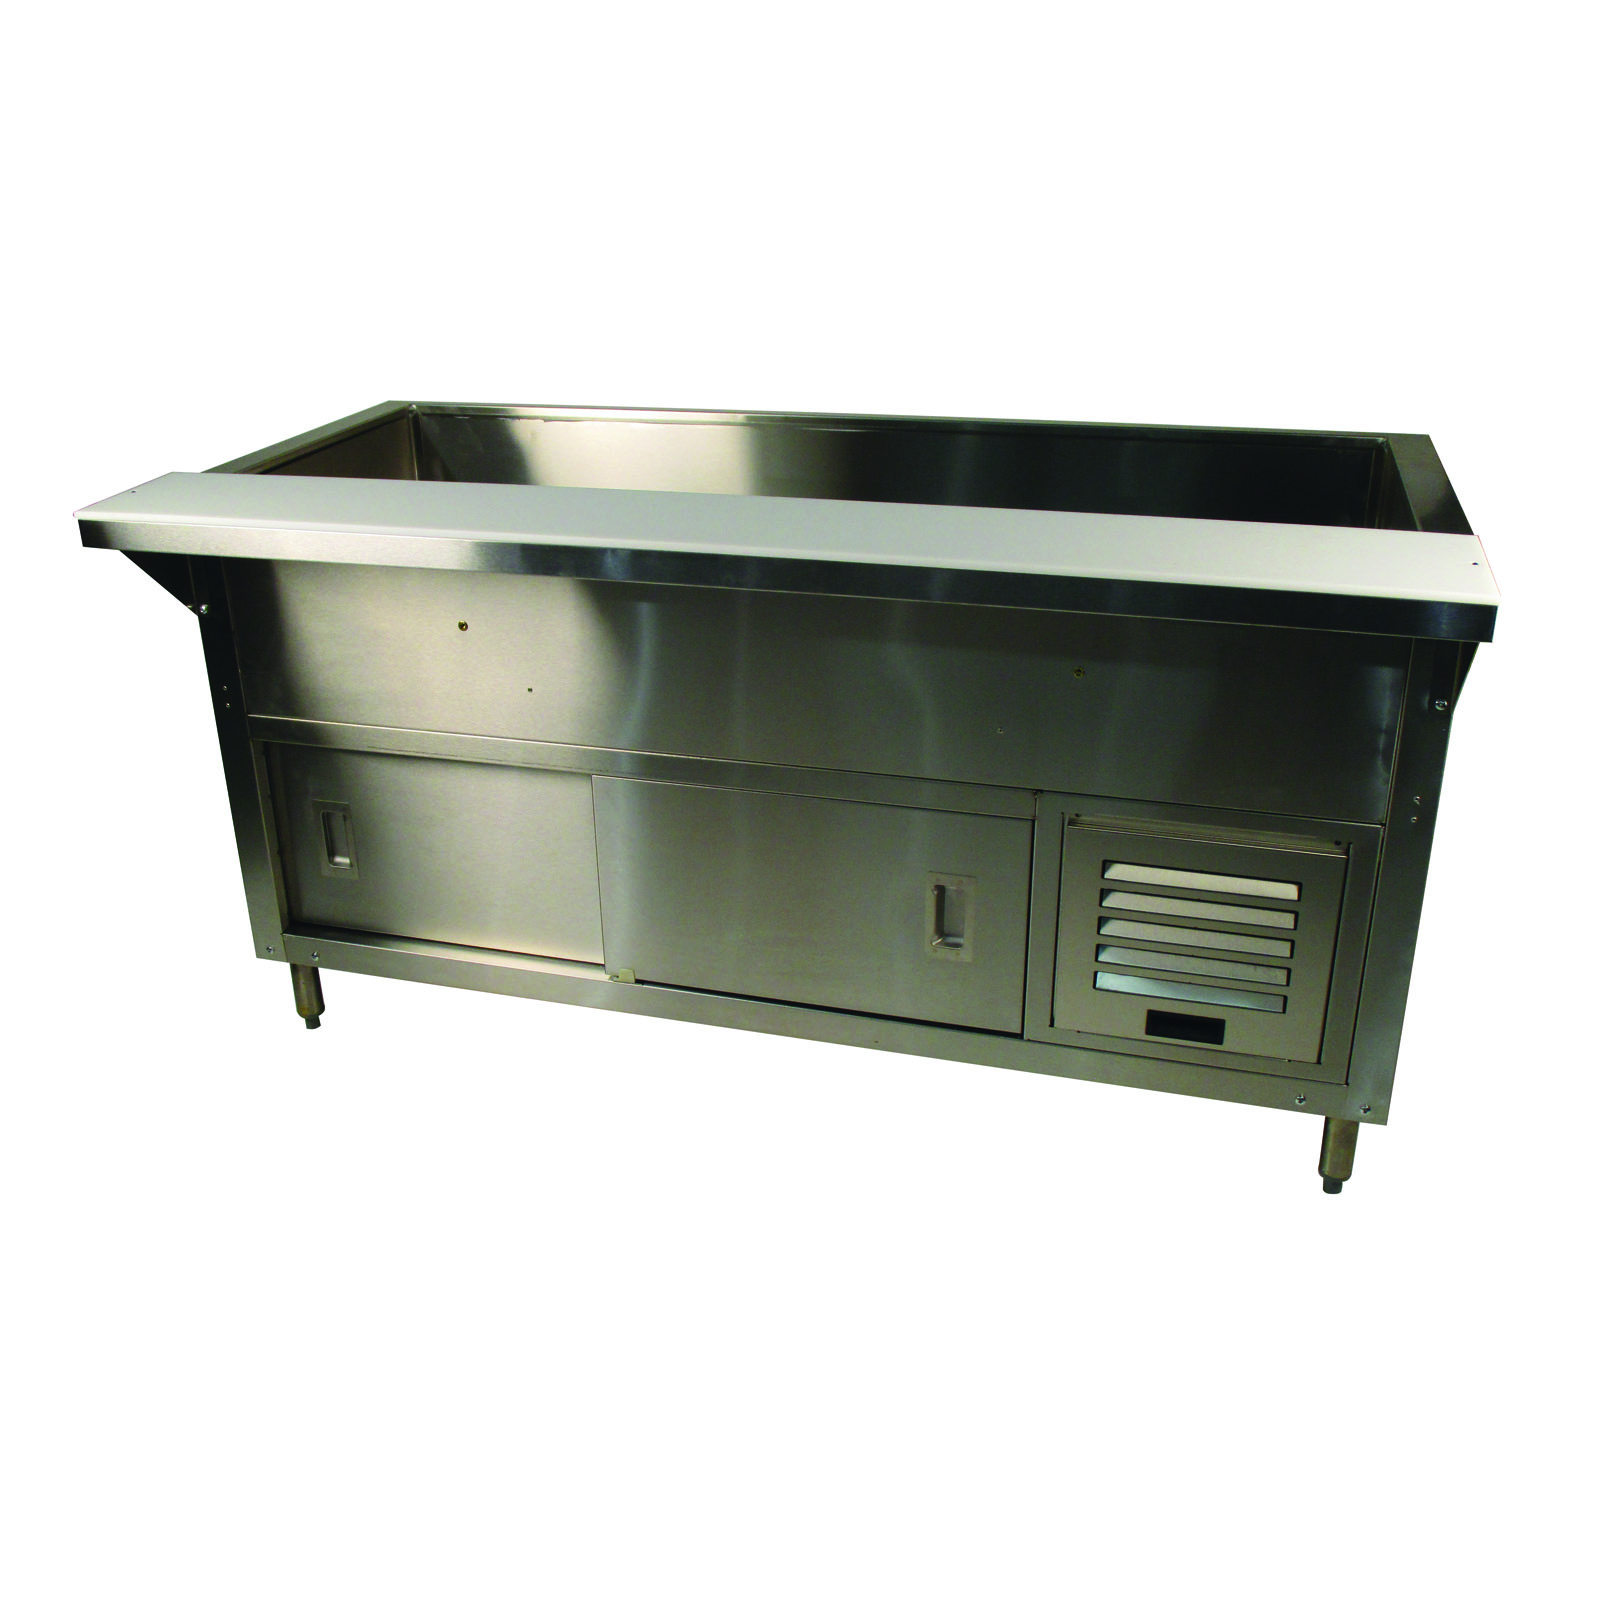 Advance Tabco MACP-5-DR serving counter, cold food